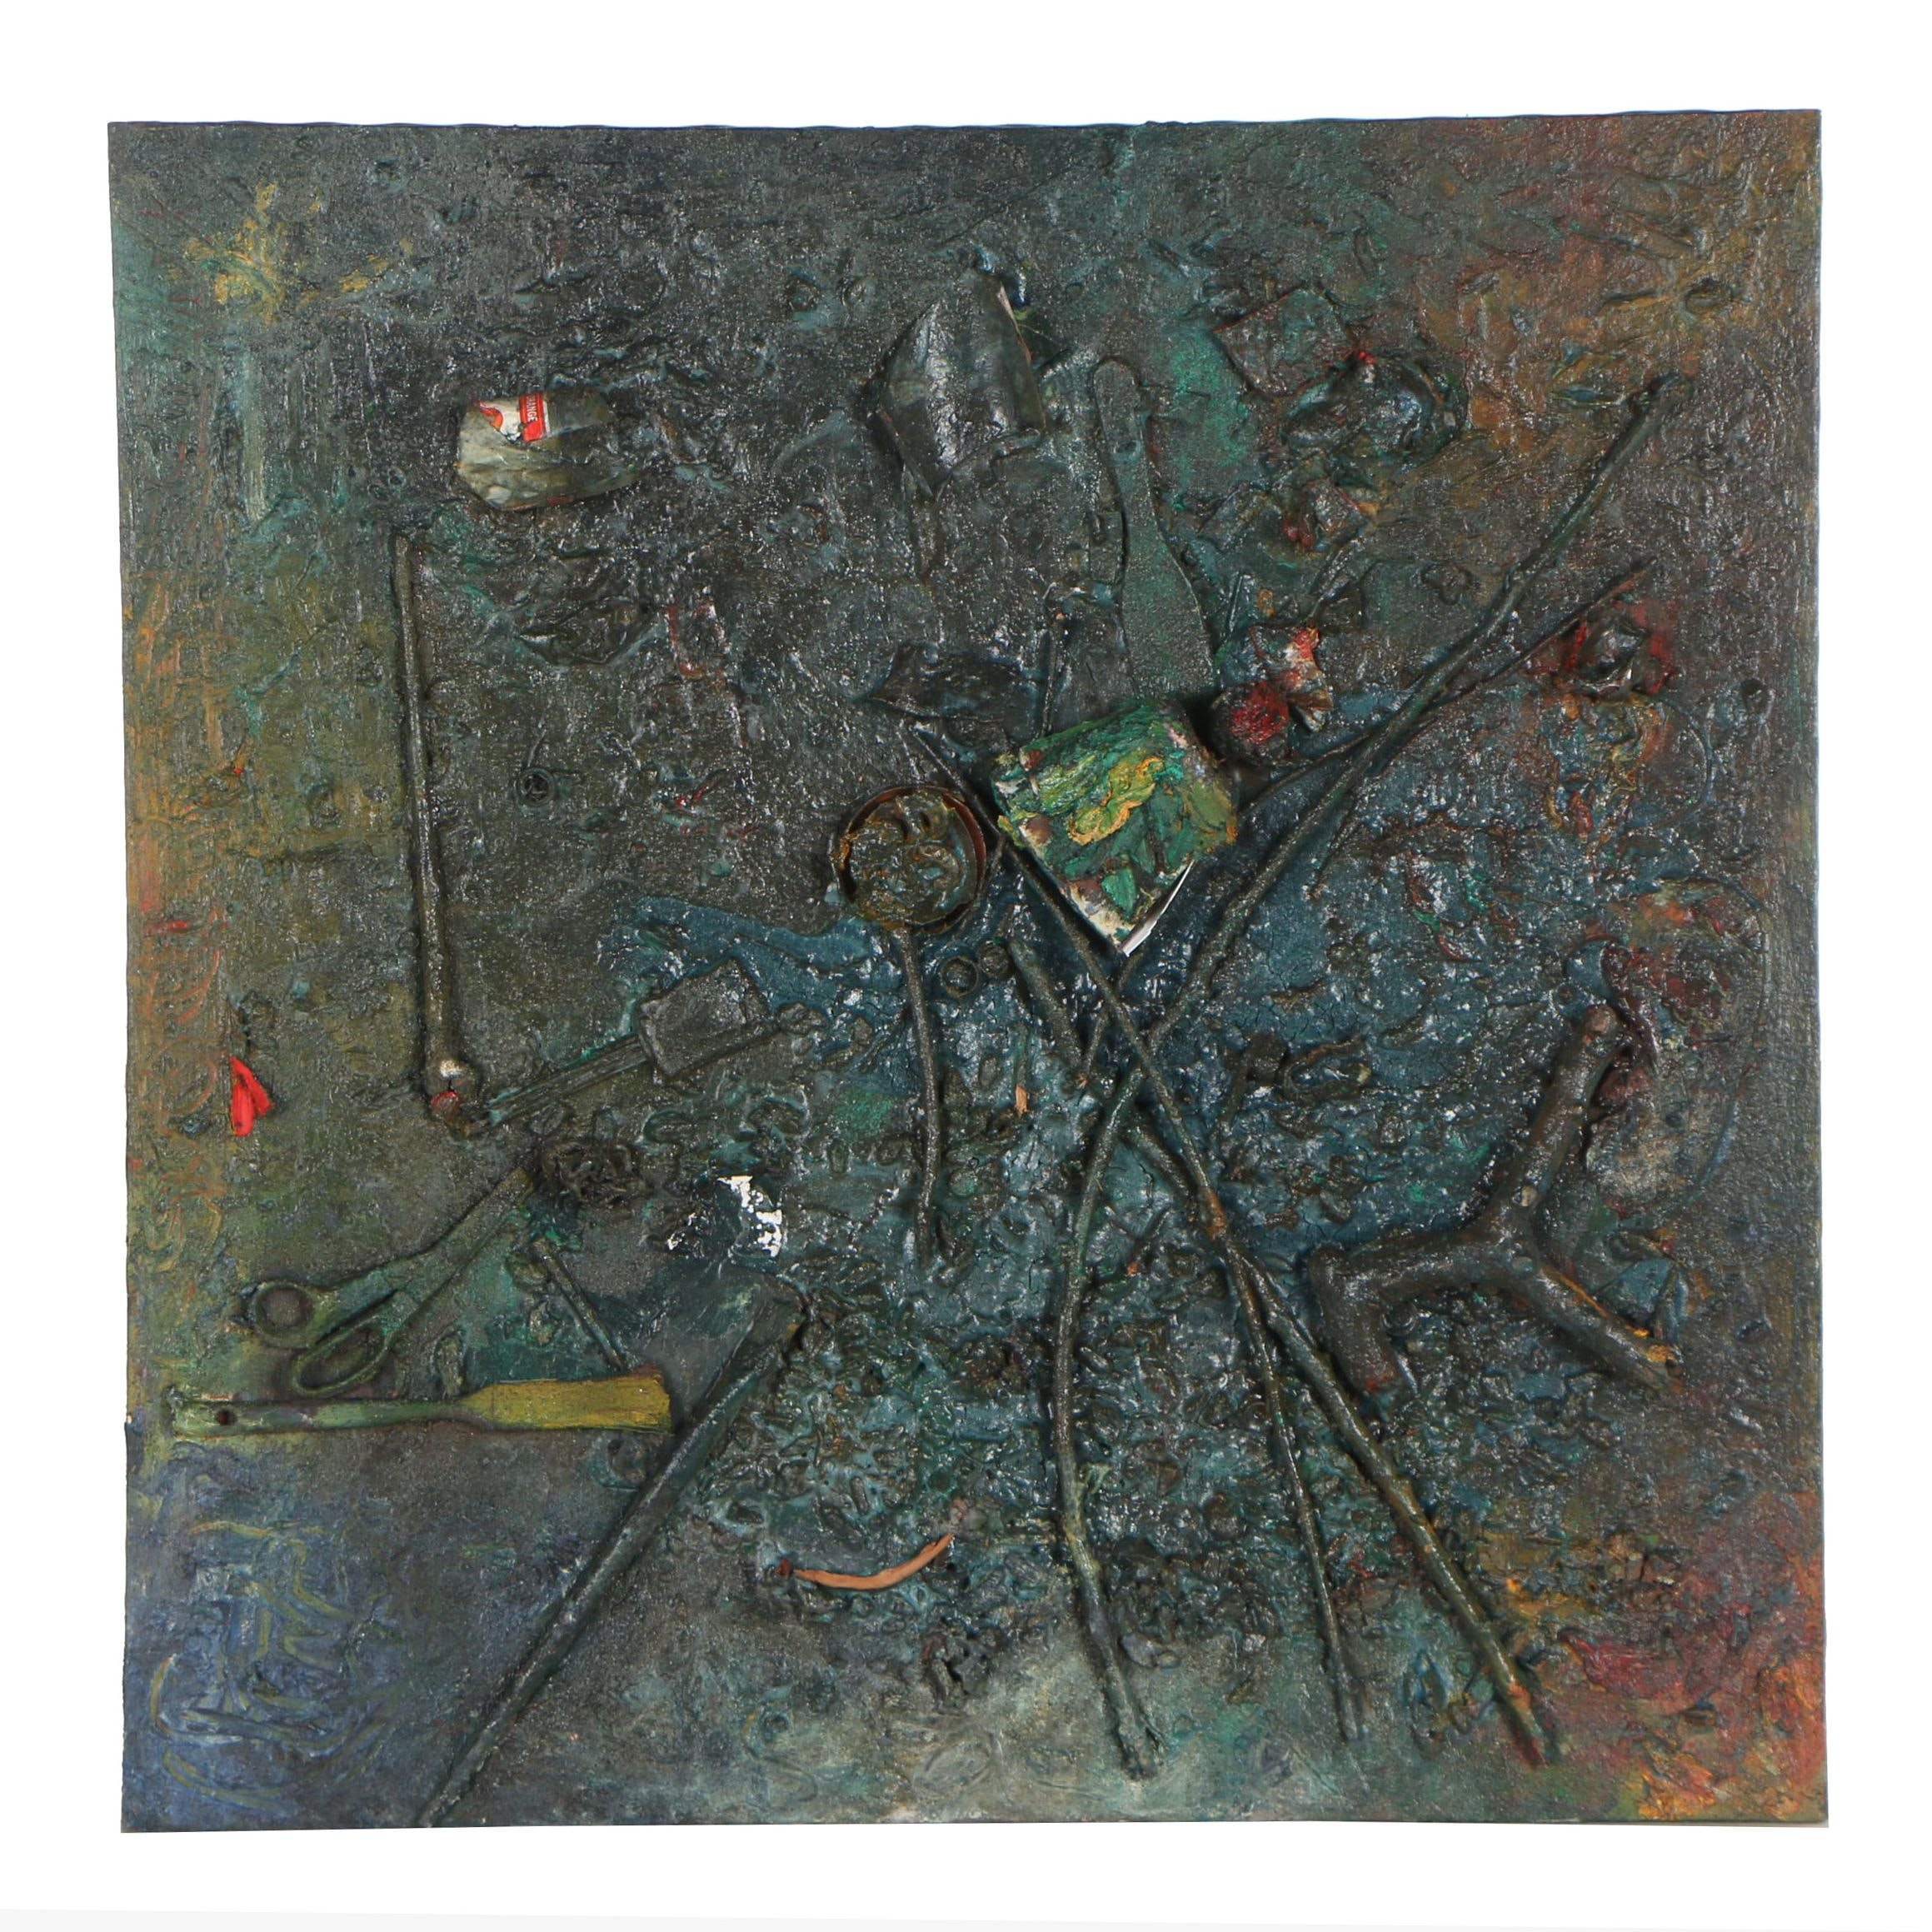 Louis Papp 1989 Mixed Media Painting